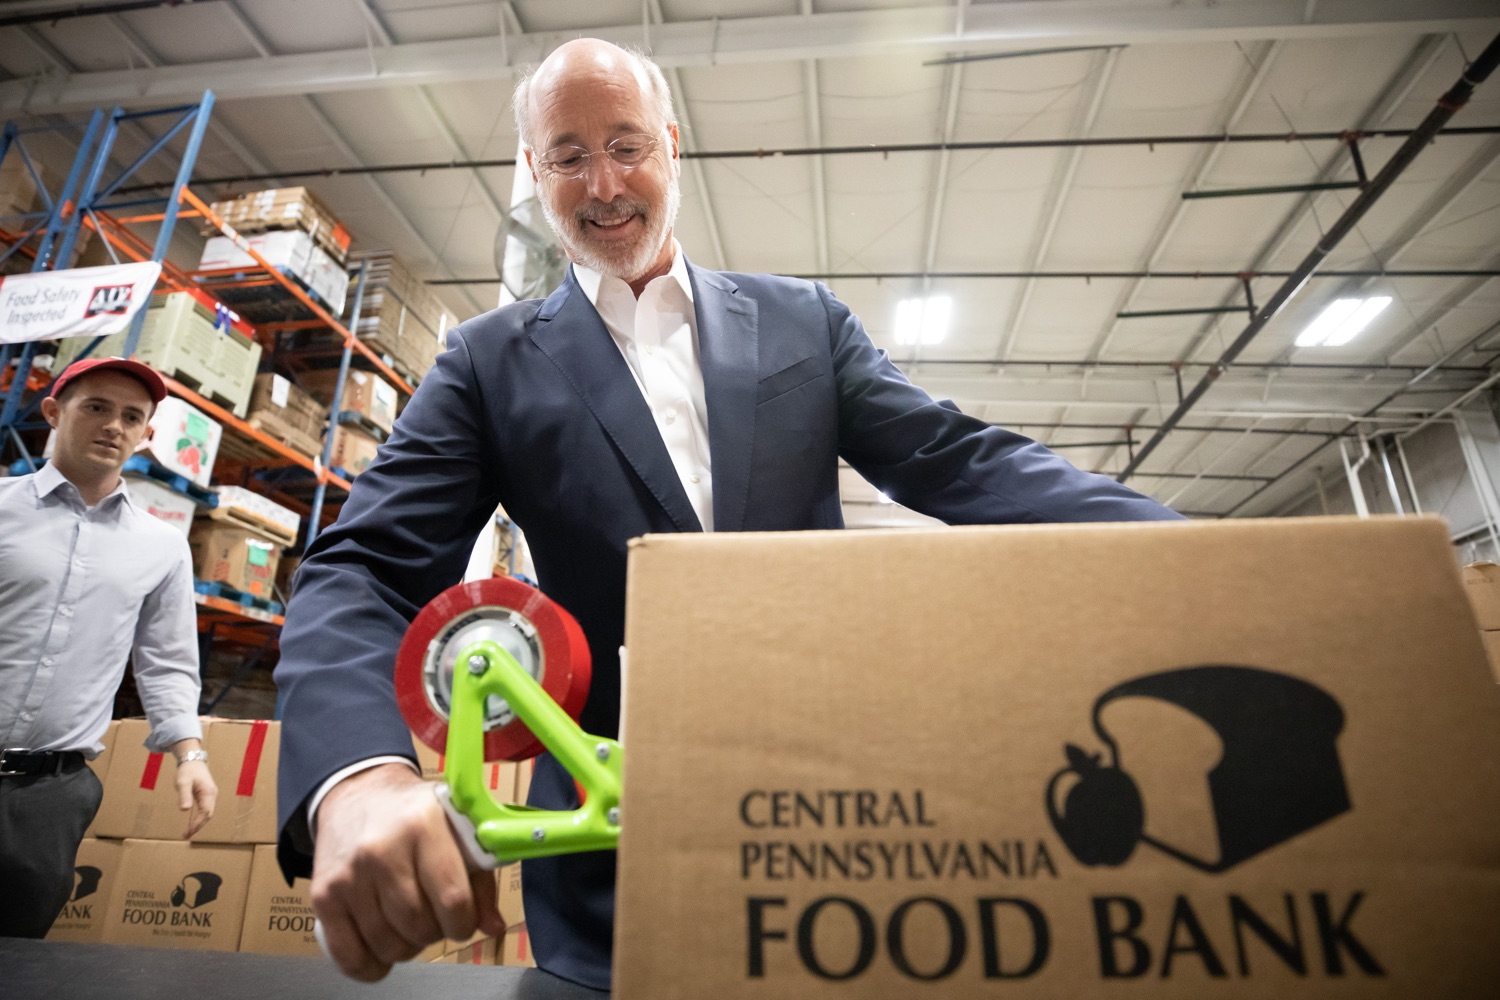 "<a href=""https://filesource.wostreaming.net/commonwealthofpa/photo/17632_gov_foodbank_volunteering_dz_001.jpg"" target=""_blank"">⇣ Download Photo<br></a>Governor Tom Wolf loading boxes of food at the Central Pennsylvania Food Bank.  The governor and first lady visit the Central Pennsylvania Food Bank in Harrisburg to participate in a volunteer project, packing boxes of food for veterans and their families. Ahead of Thanksgiving and the holiday season, Governor Tom Wolf and First Lady Frances Wolf are reminding Pennsylvanians of the importance of helping each other. Harrisburg, PA  Tuesday November 26, 2019"